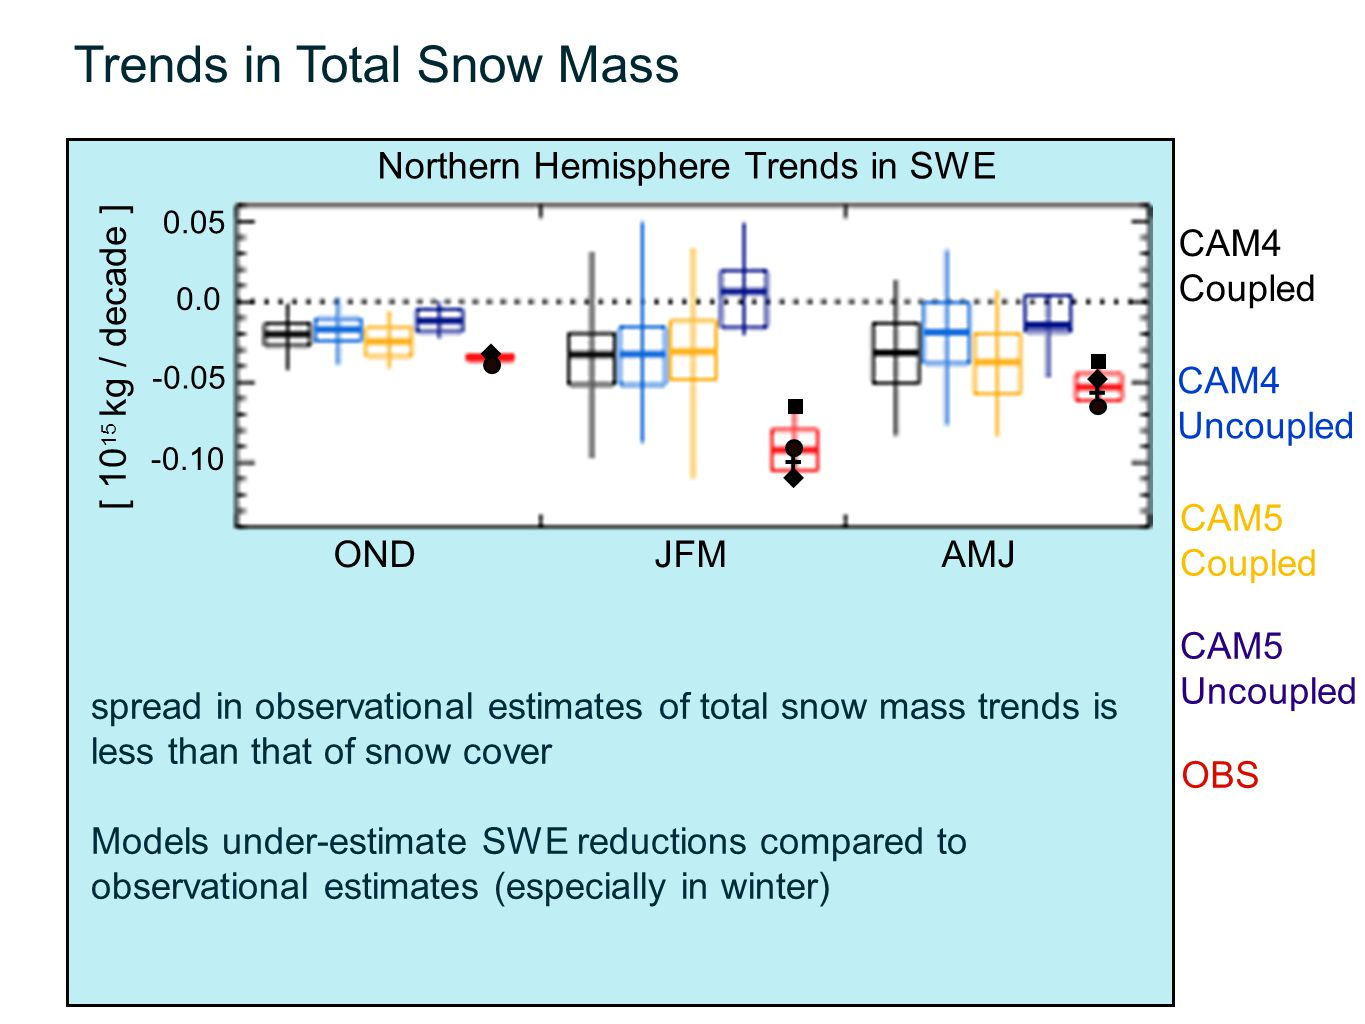 Trends in Total Snow Mass OND JFM AMJ 0.05 0.0 -0.05 -0.10 [ 10 15 kg / decade ] Northern Hemisphere Trends in SWE CAM4 Coupled CAM4 Uncoupled OBS CAM